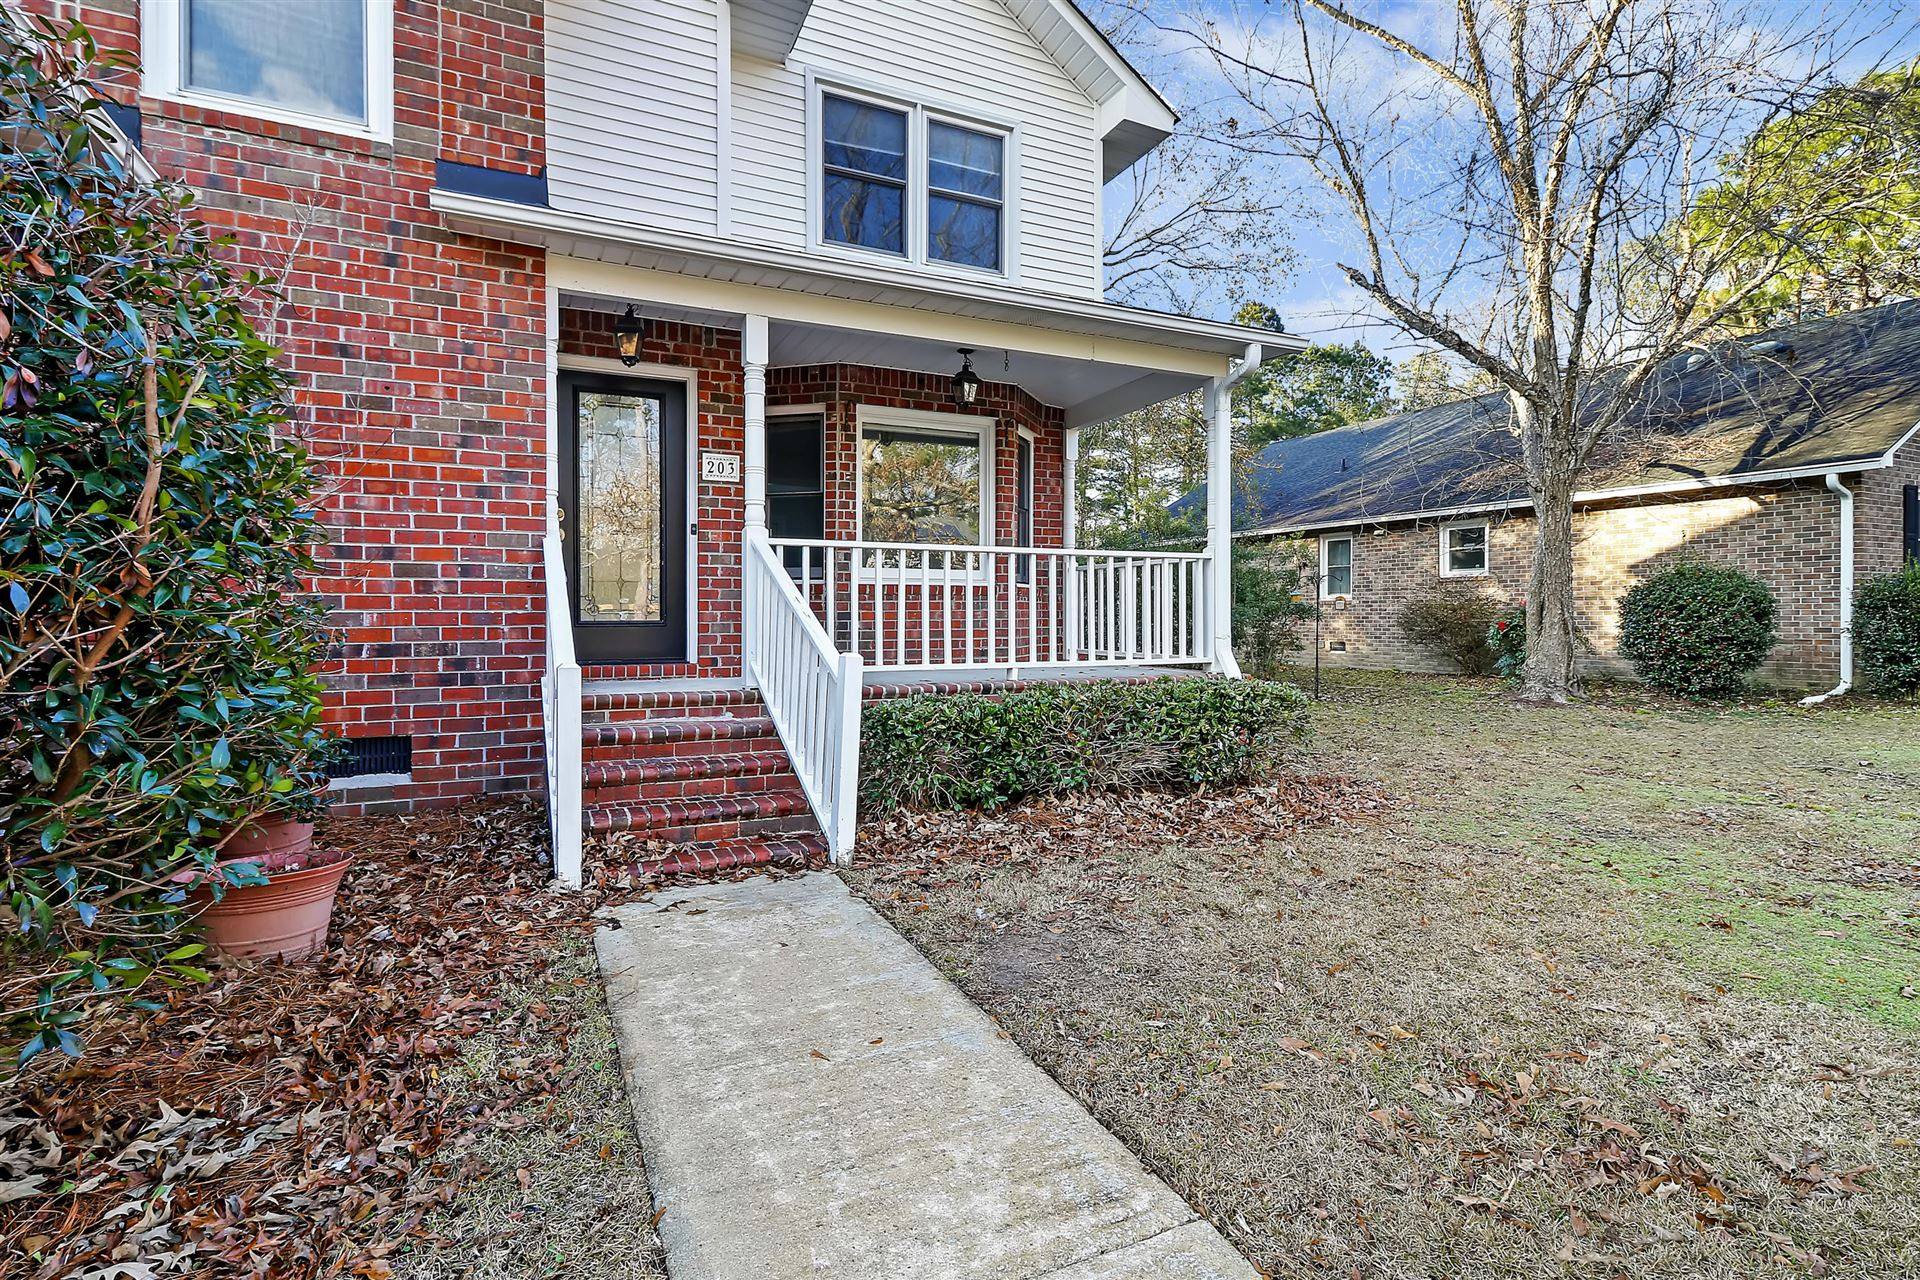 Photo of 203 Bamert Street, Summerville, SC 29483 (MLS # 20032161)